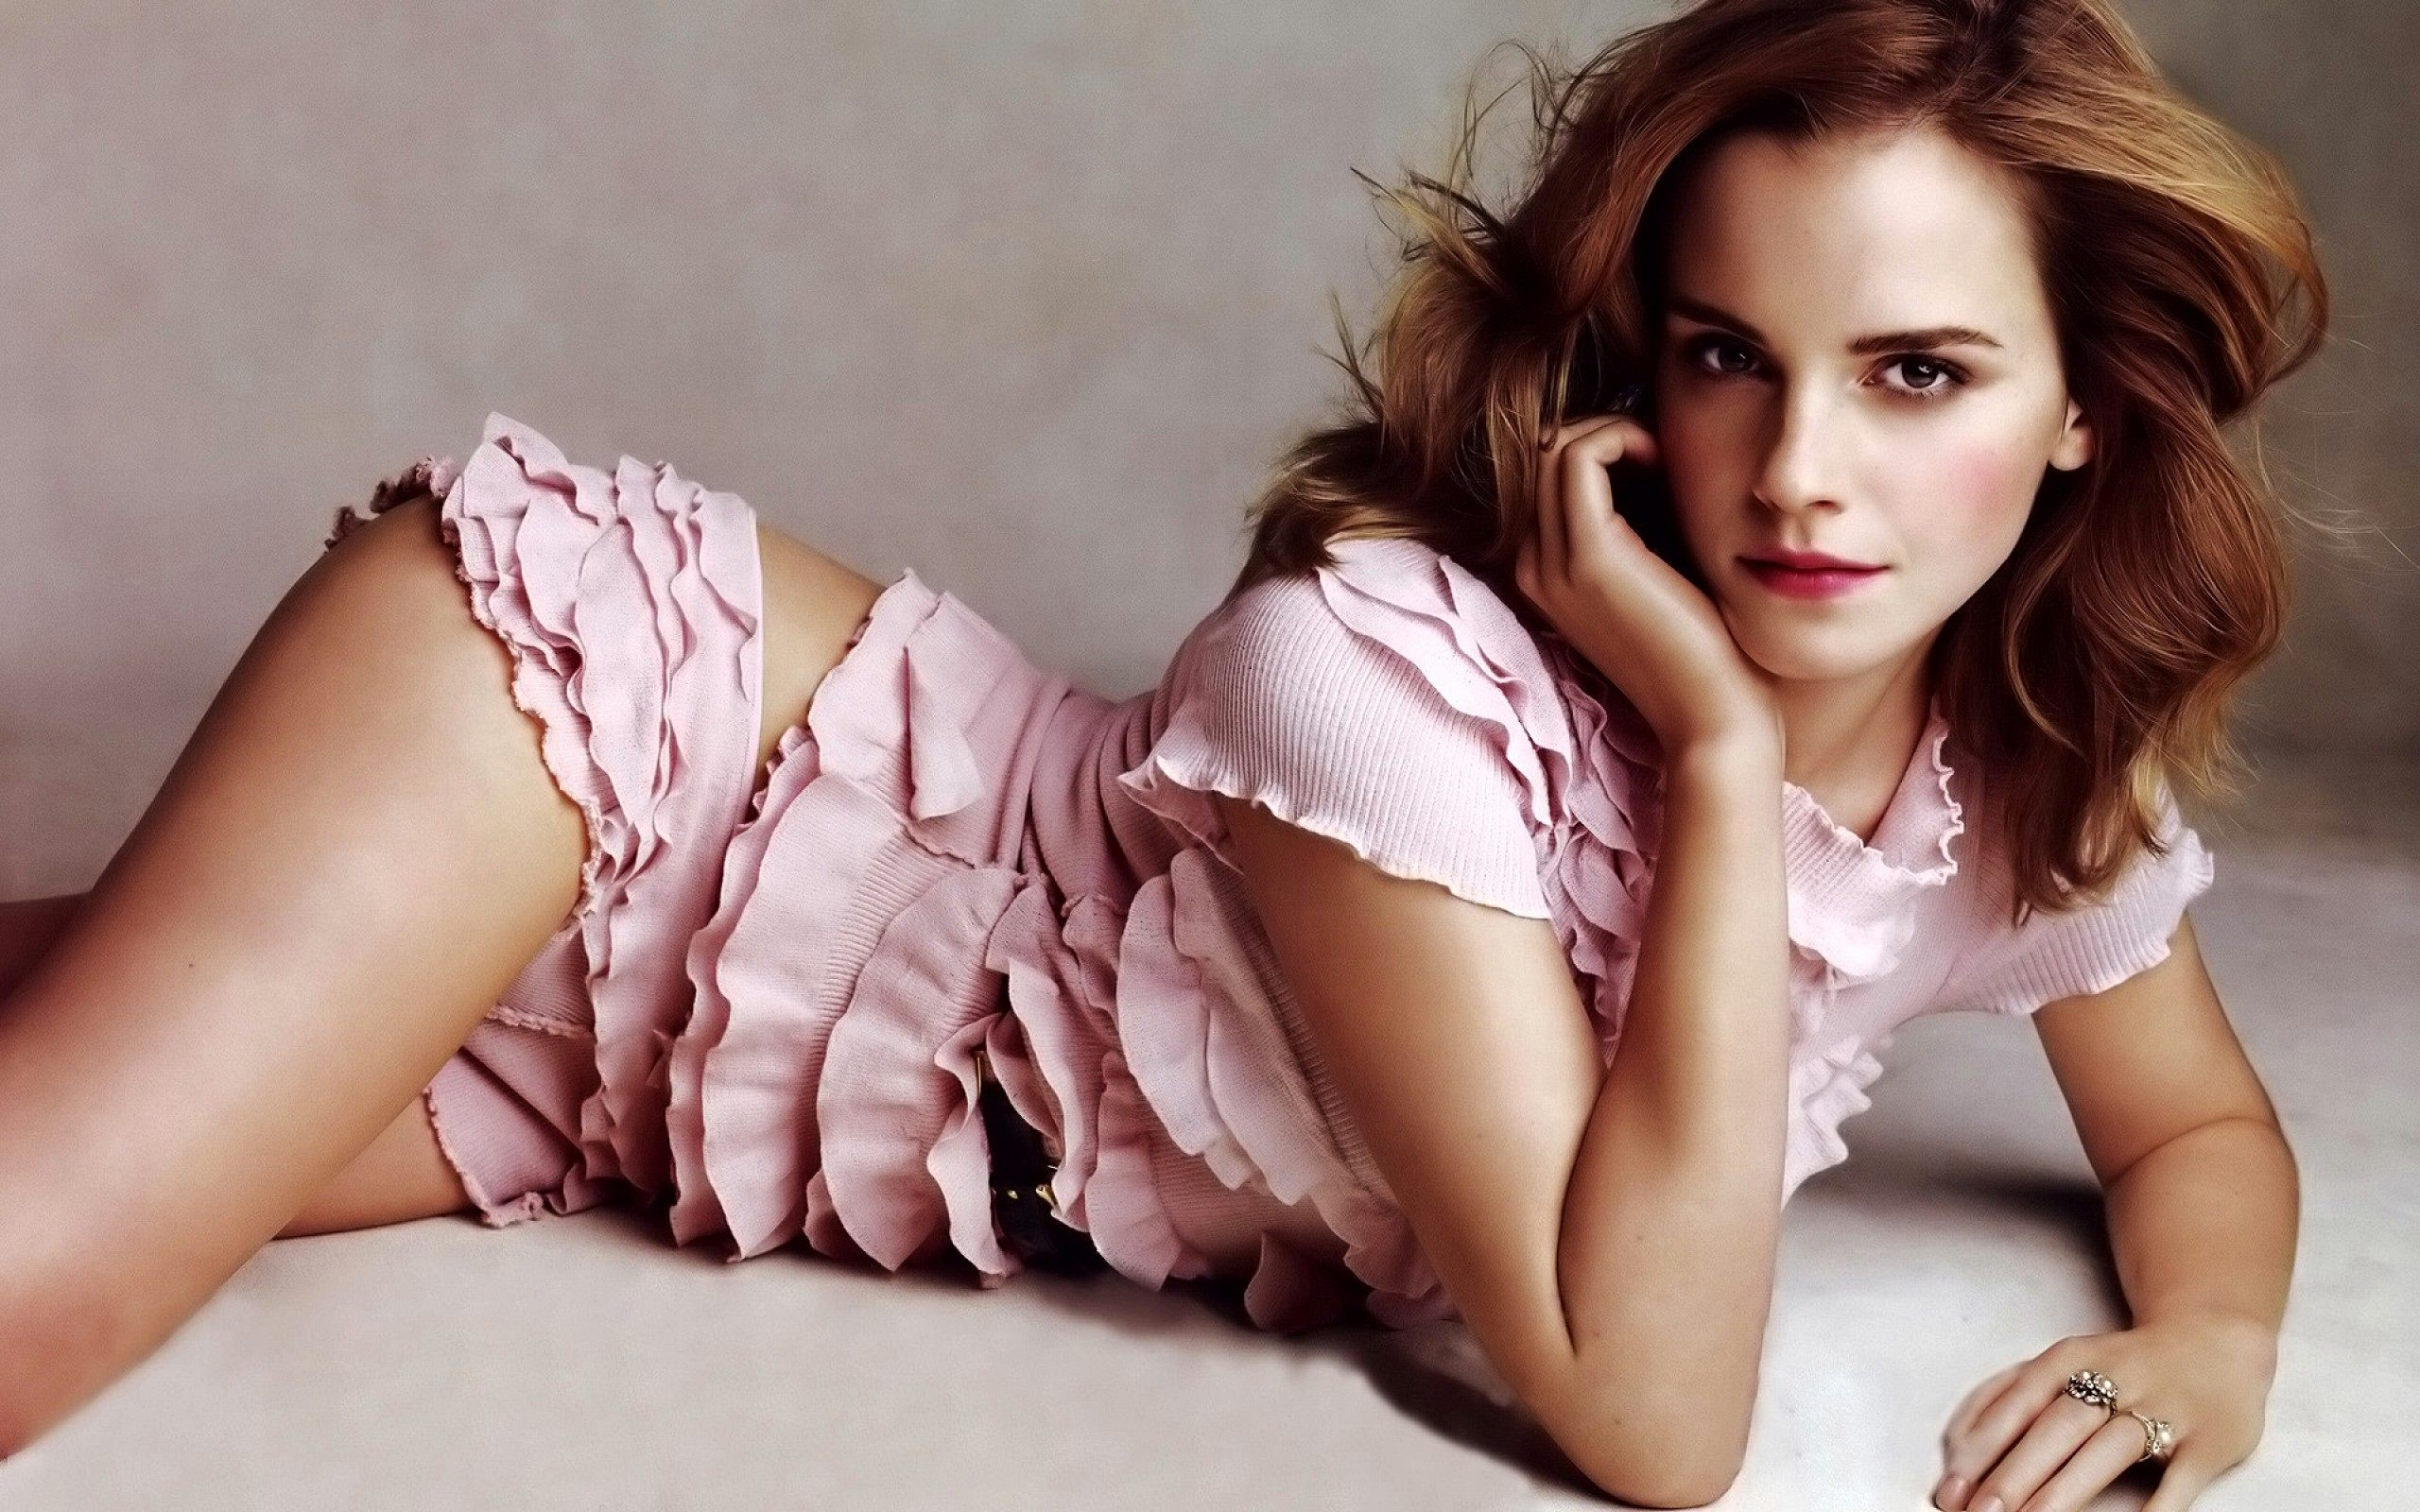 a-guide-to-cool-emma-watson-photos-best-of-folkr-38